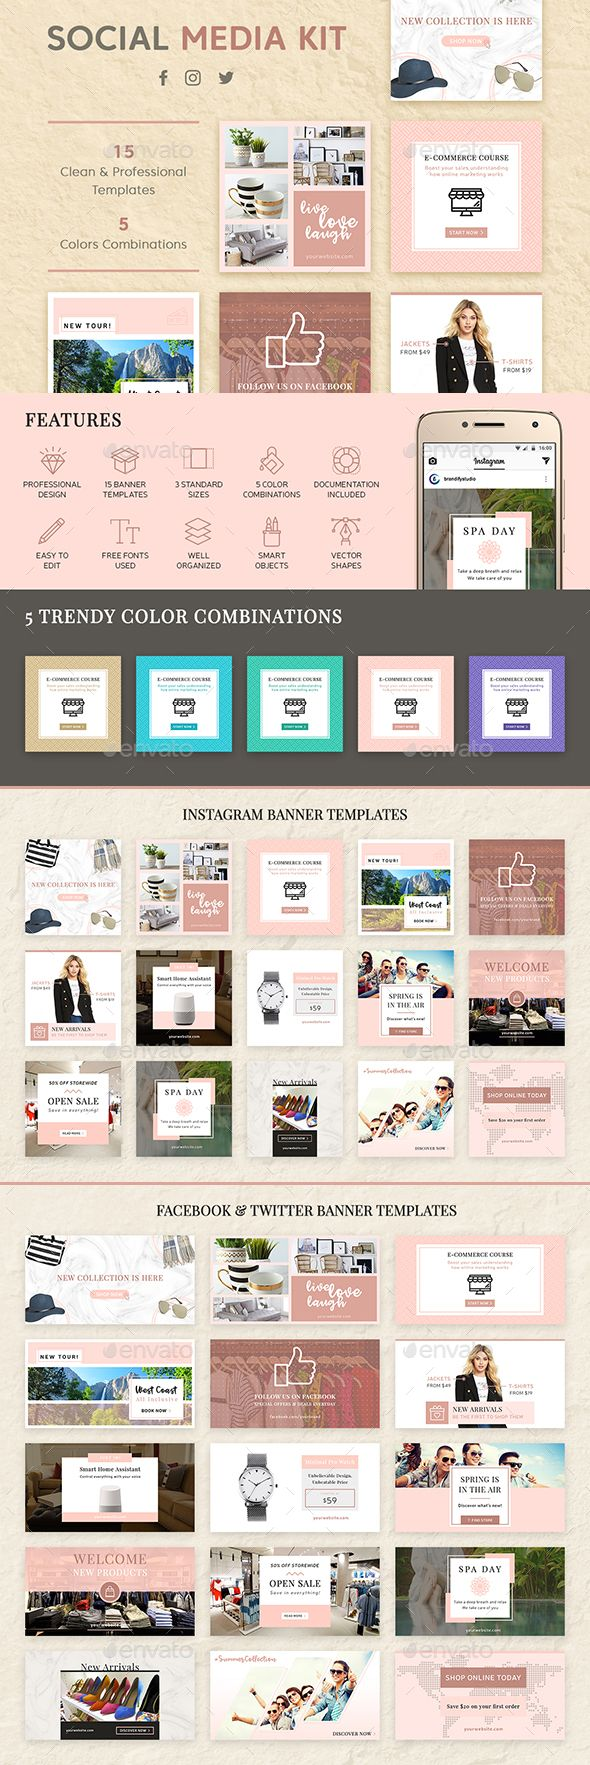 Social media kit twitter banner media kit and social media template social media kit pronofoot35fo Image collections